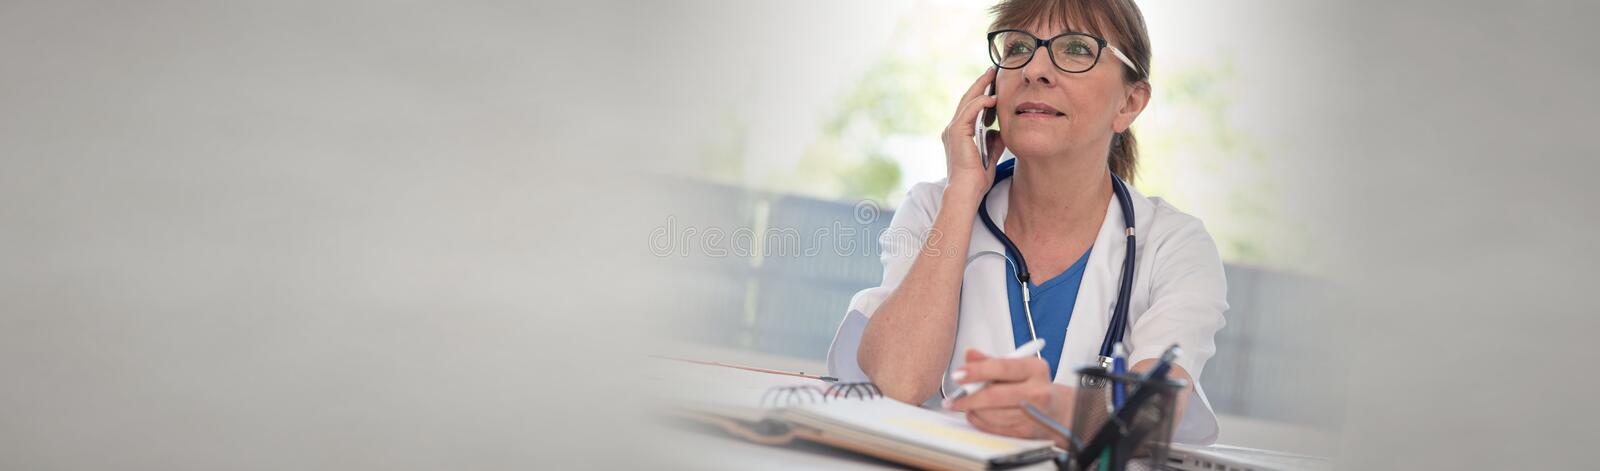 Female doctor talking on mobile phone stock images